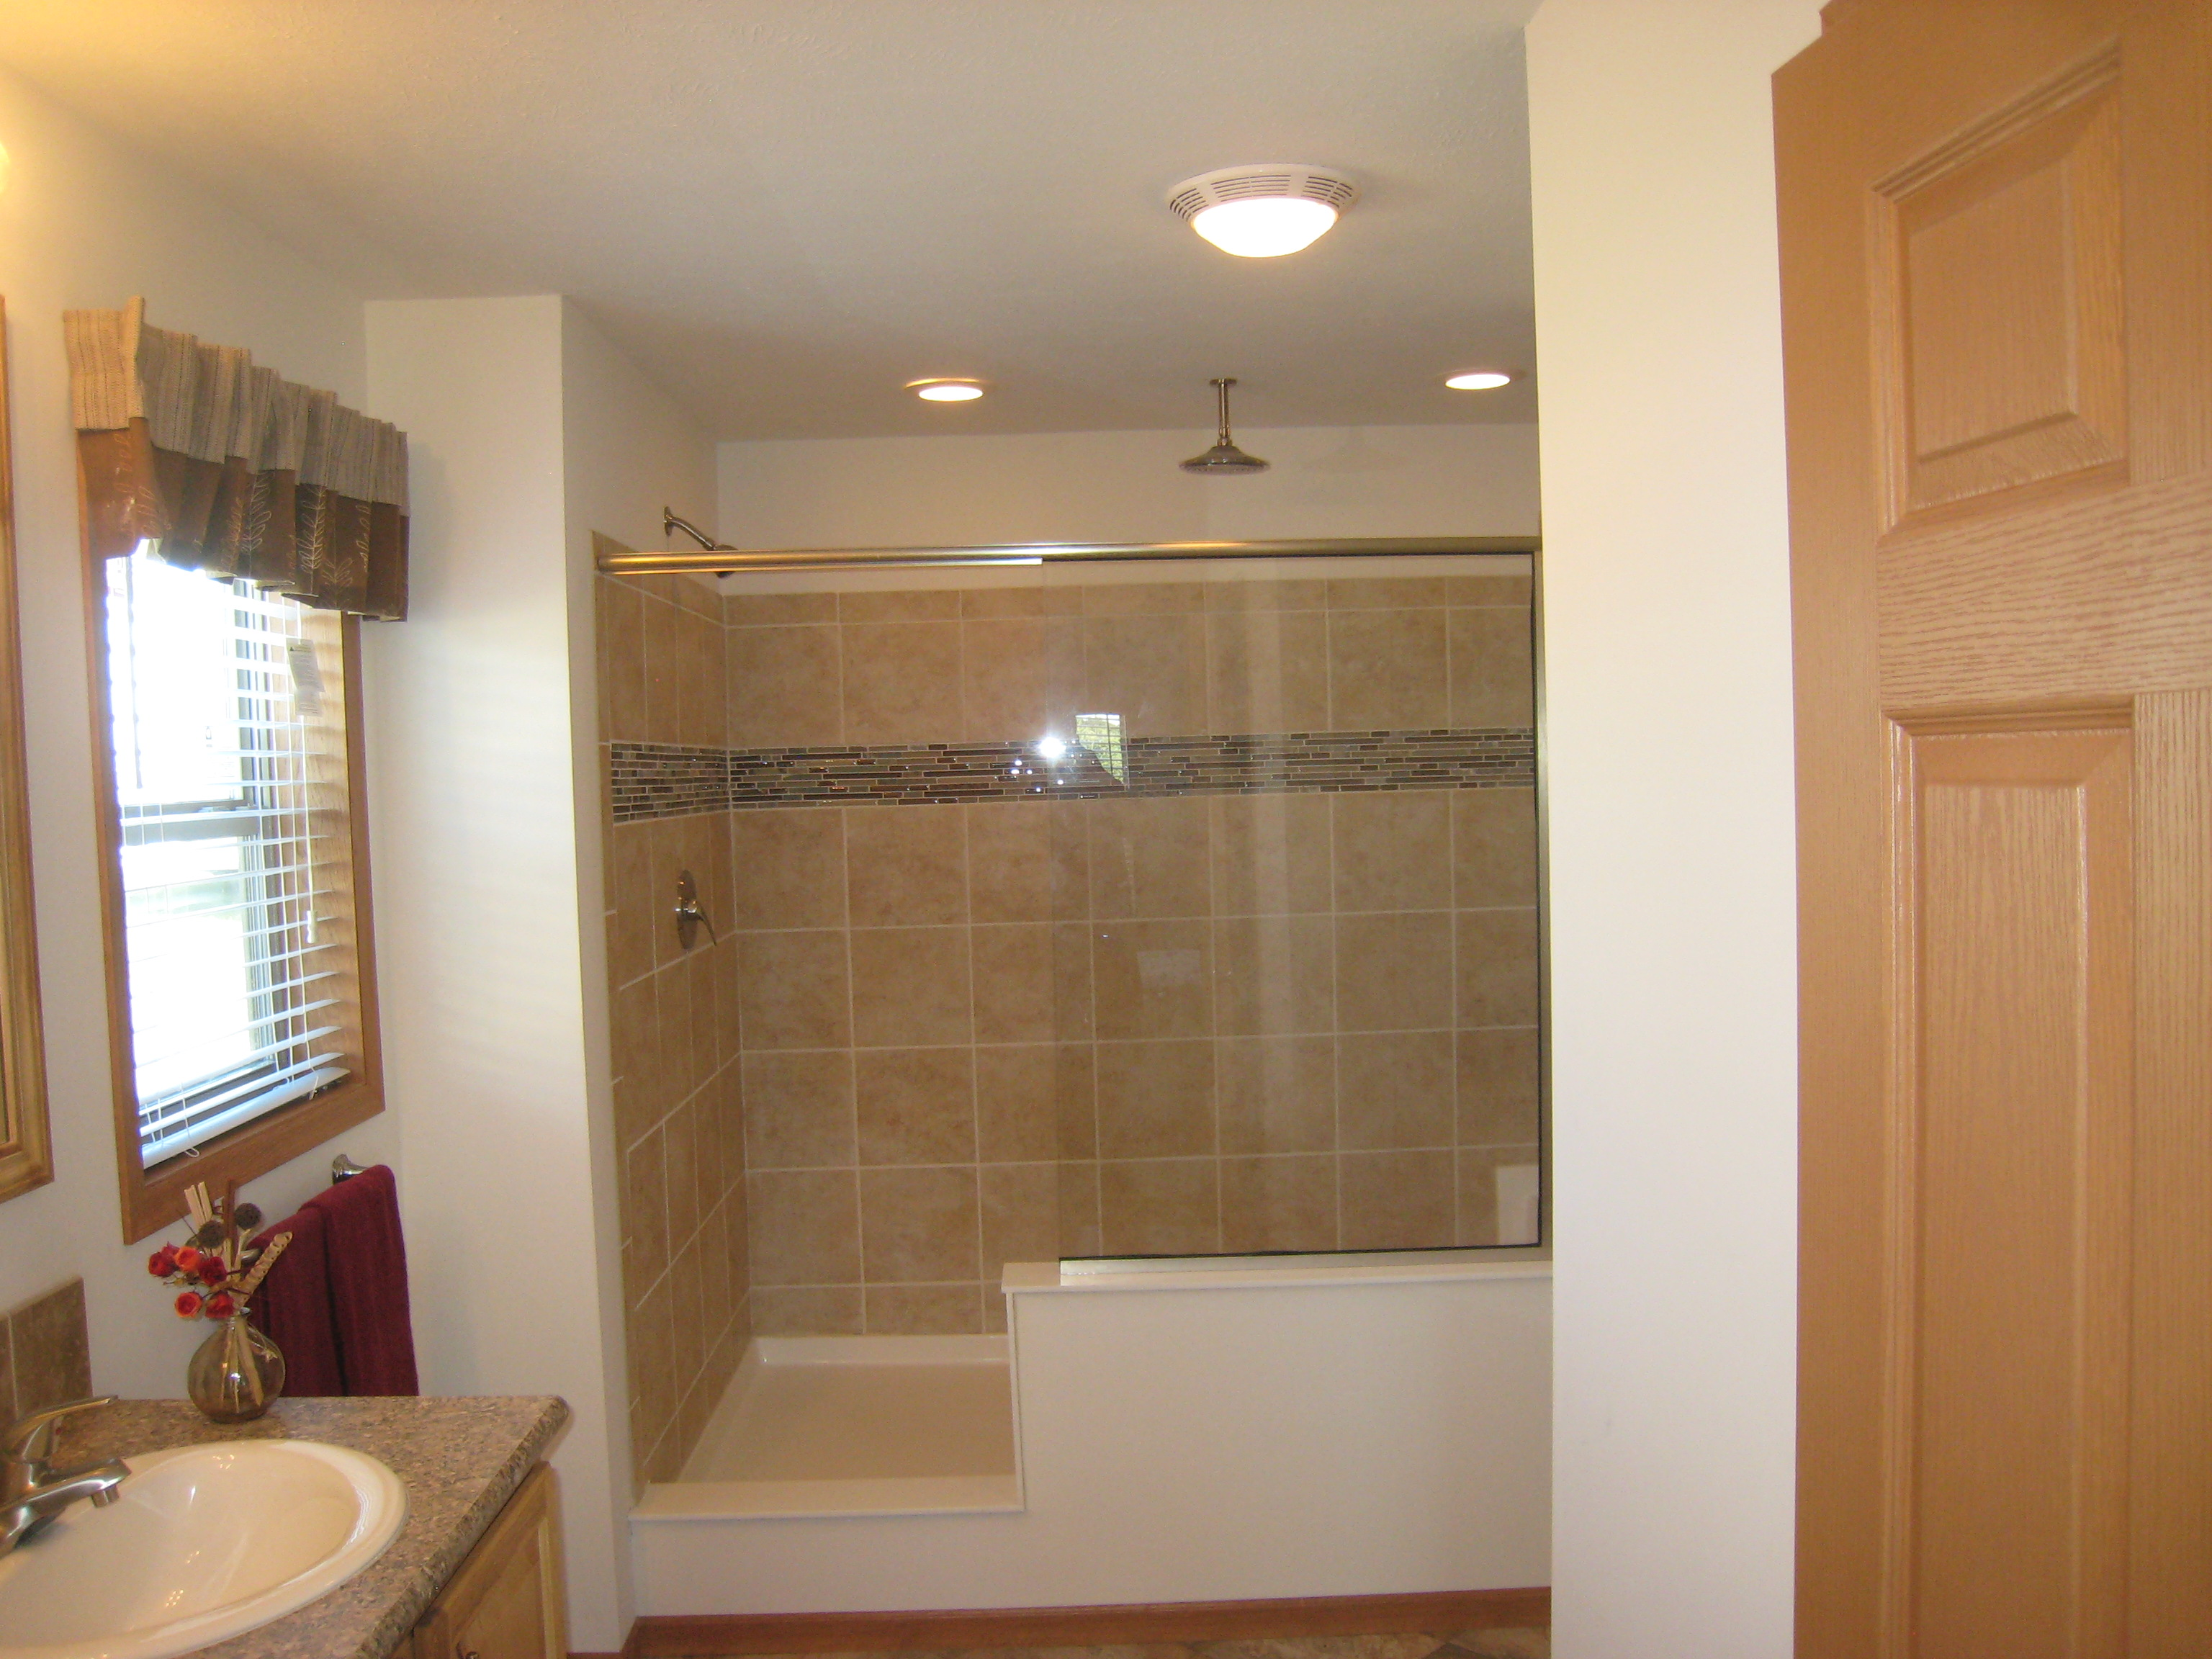 4' X 8' Waterfall Shower w/ Bench